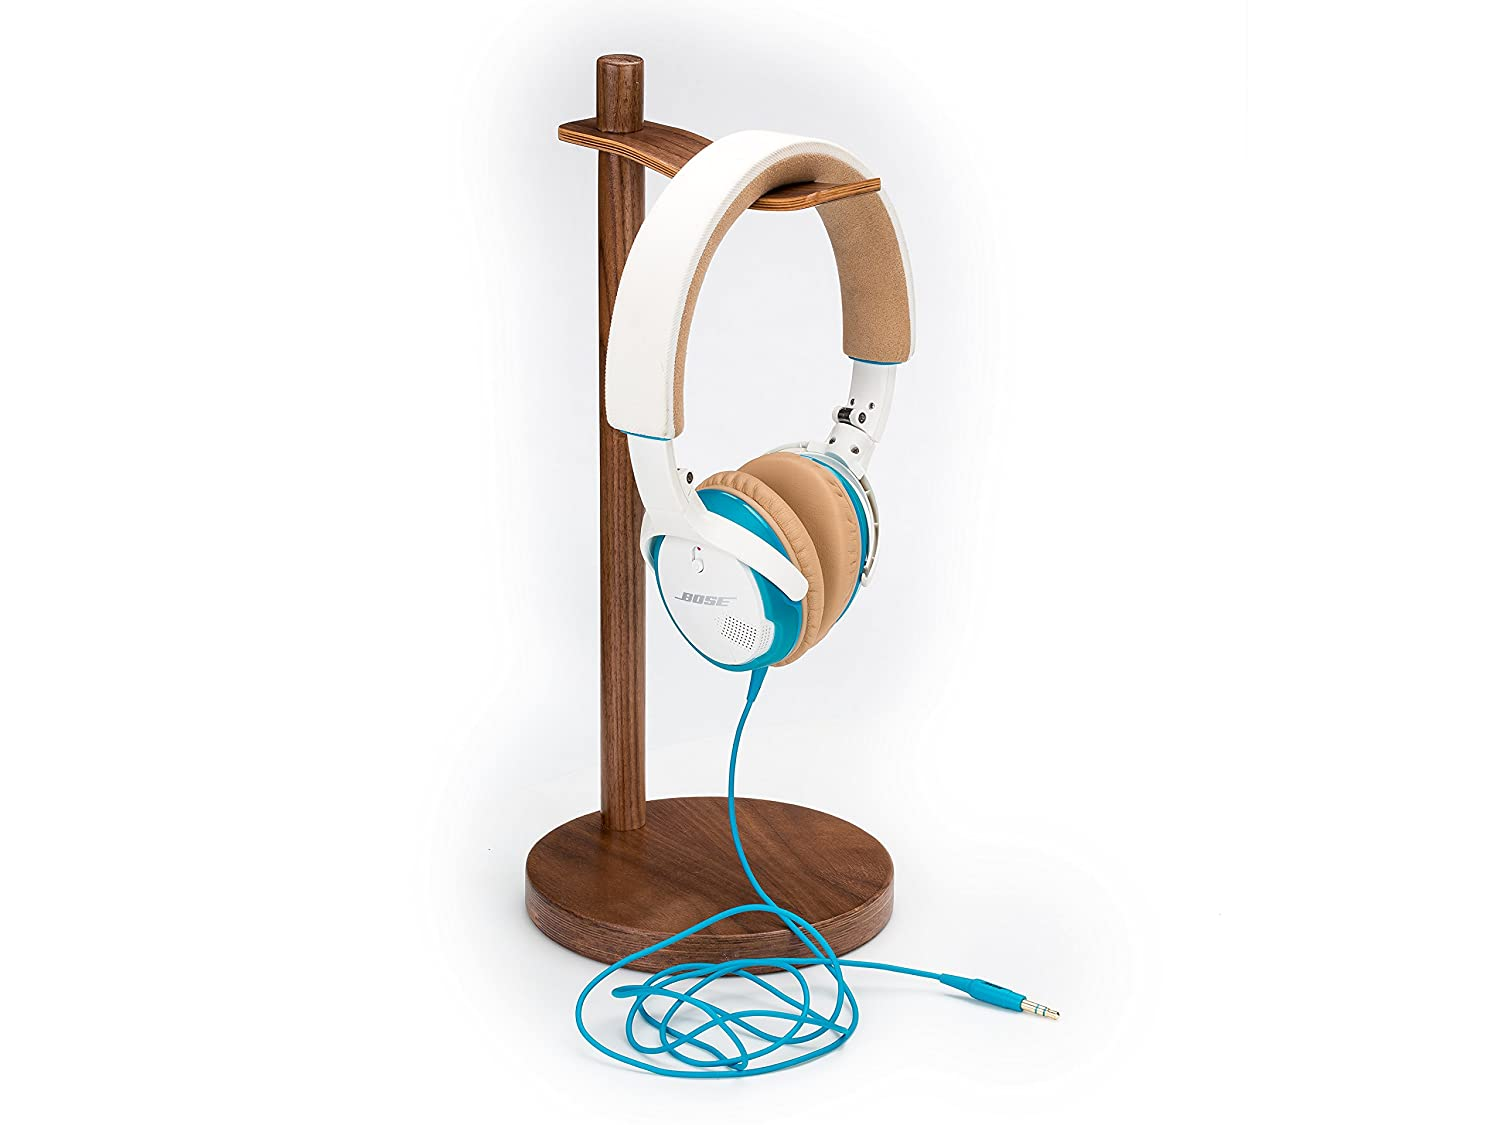 Headphone Stand Headset Holder Wooden, 3 Styles Headphone Hanger Orgnizer Support for All Headphone (Walnut 1) Non-Branded